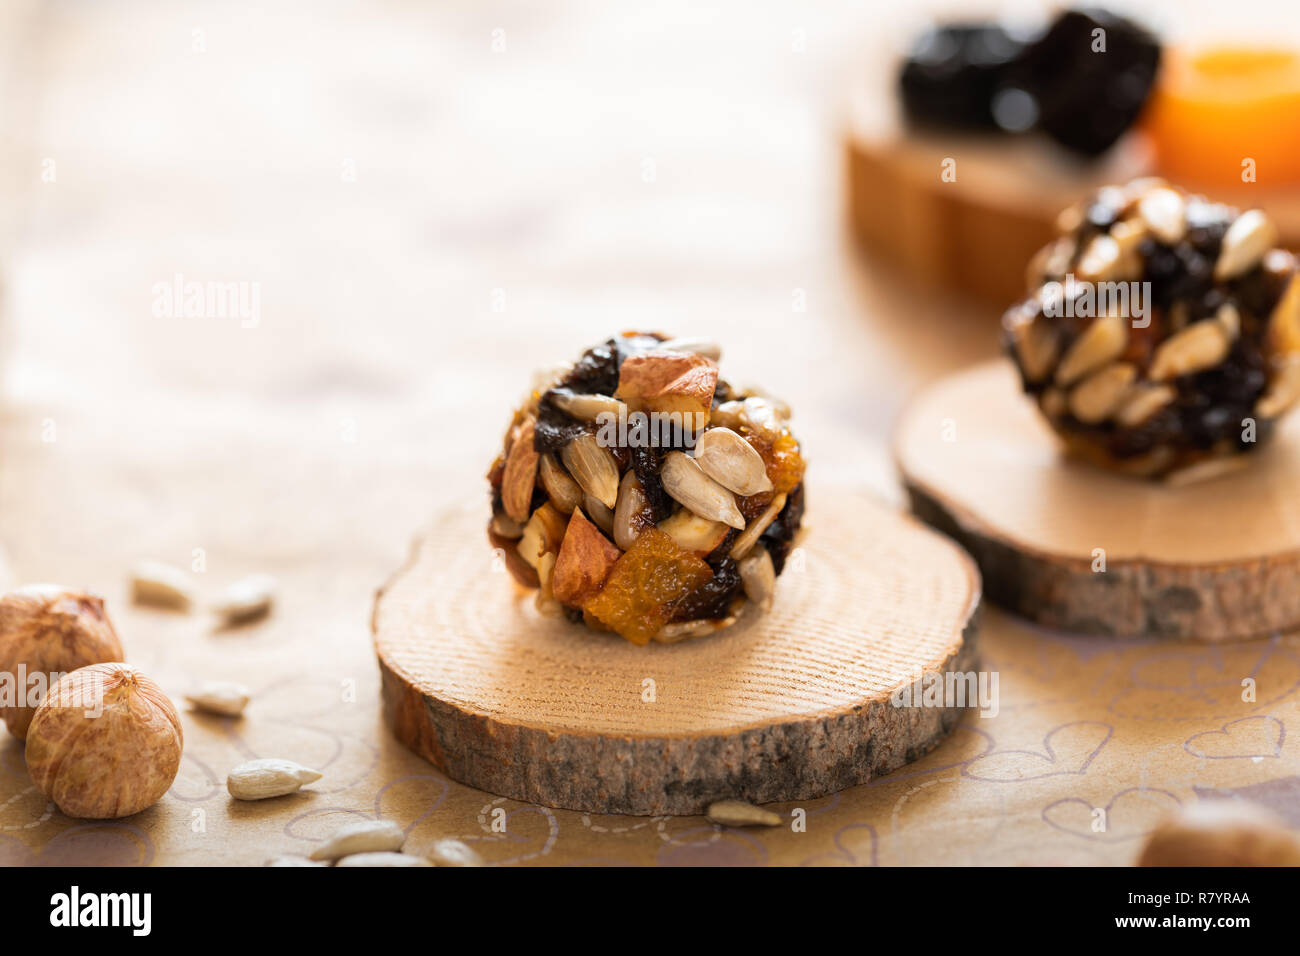 Handmade energy balls on wooden saw cuts and ingredients for their preparation on paper background. Stock Photo